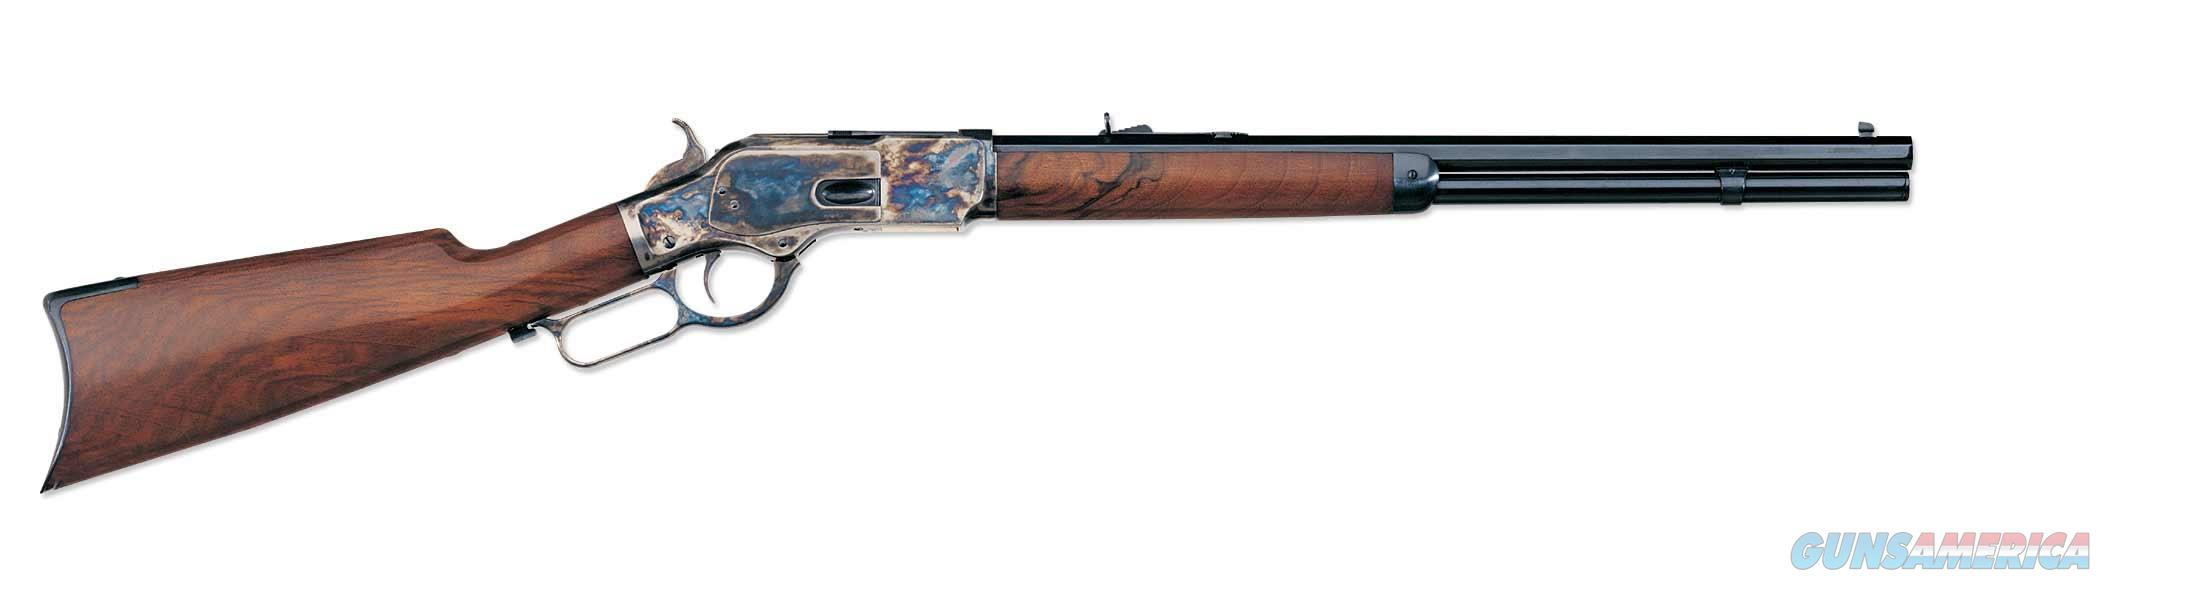 "Uberti 1873 Short Rifle .44-40 Win 20"" Octagon 342410   Guns > Rifles > Uberti Rifles > Lever Action"